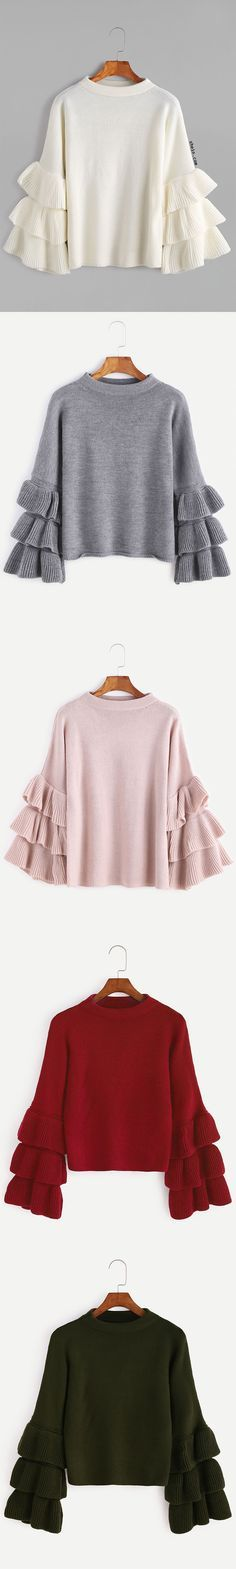 Layered Ruffle Sleeve Pullover Sweater